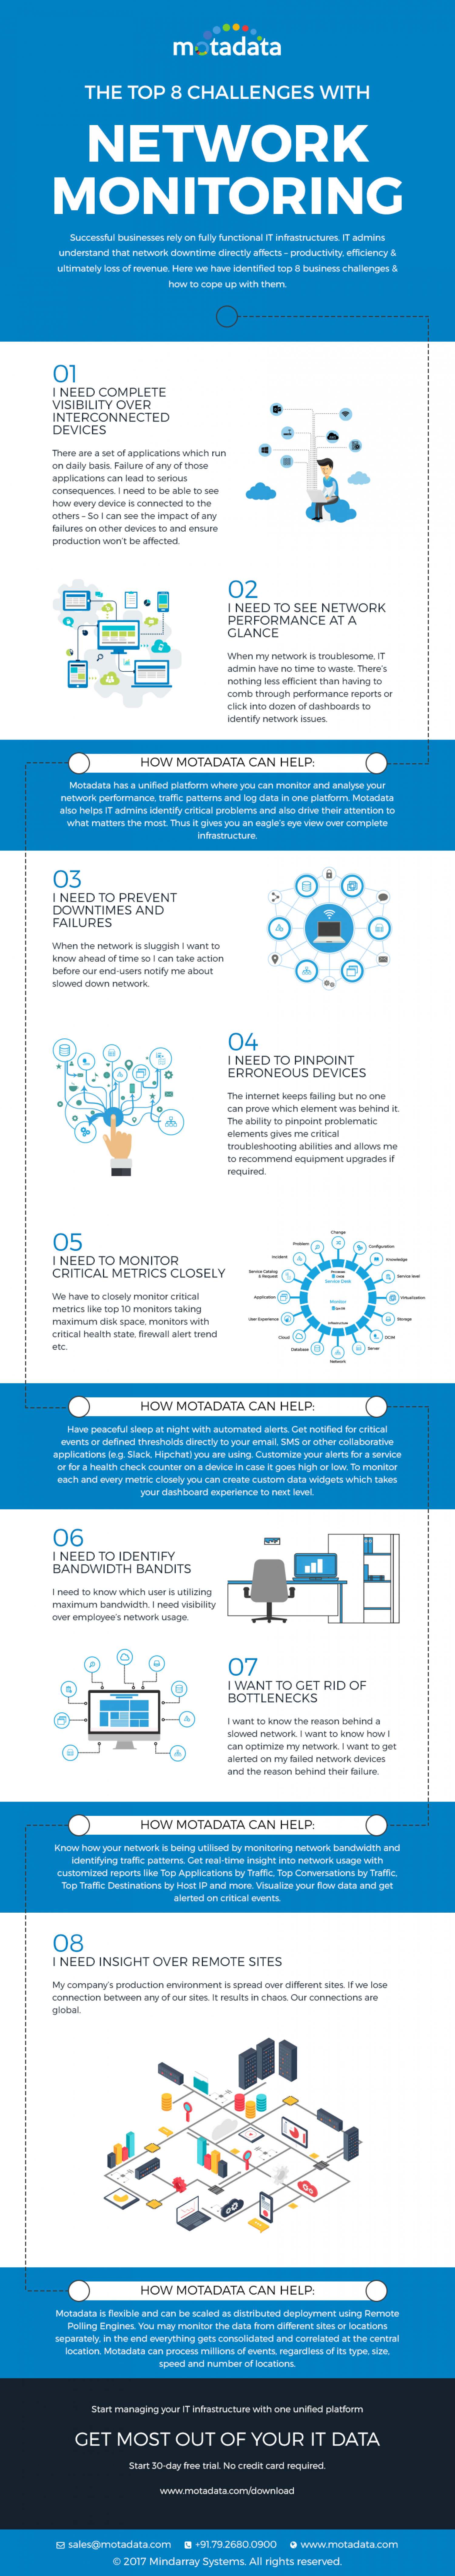 Top 8 Network Monitoring Challenges (Infographic) Infographic